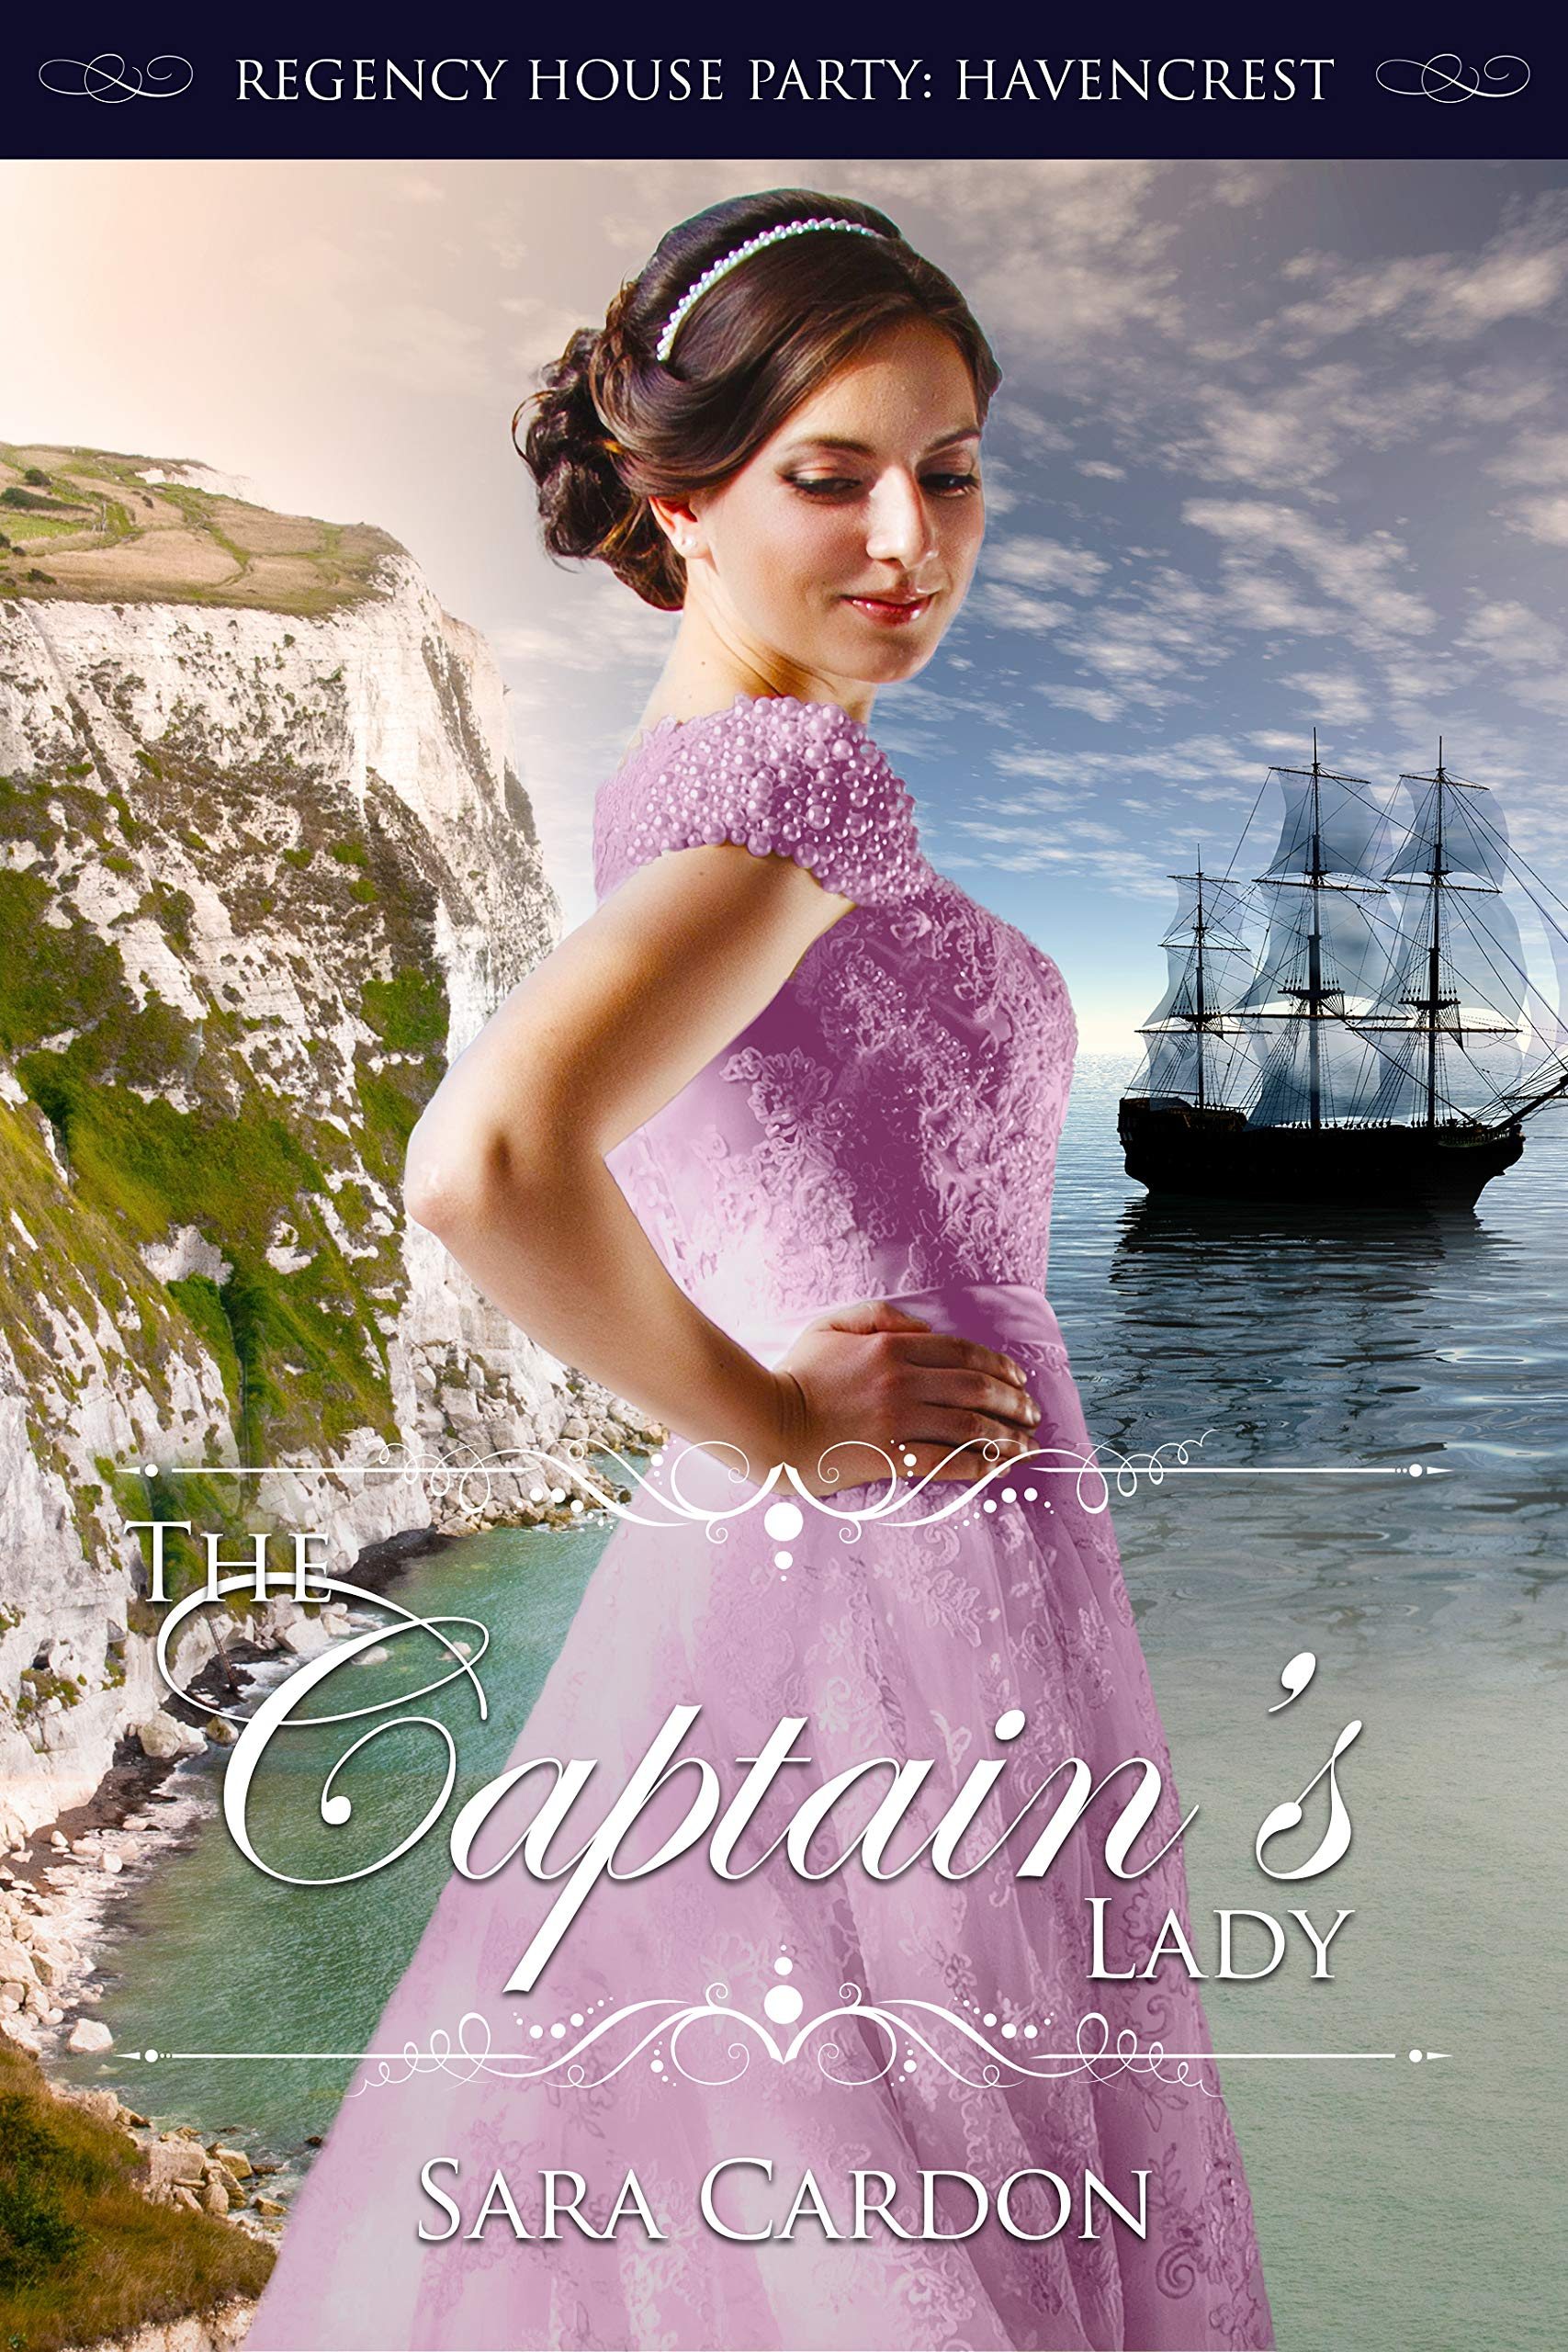 Download The Captain's Lady (Regency House Party: Havencrest Book 4) by Sara Cardon